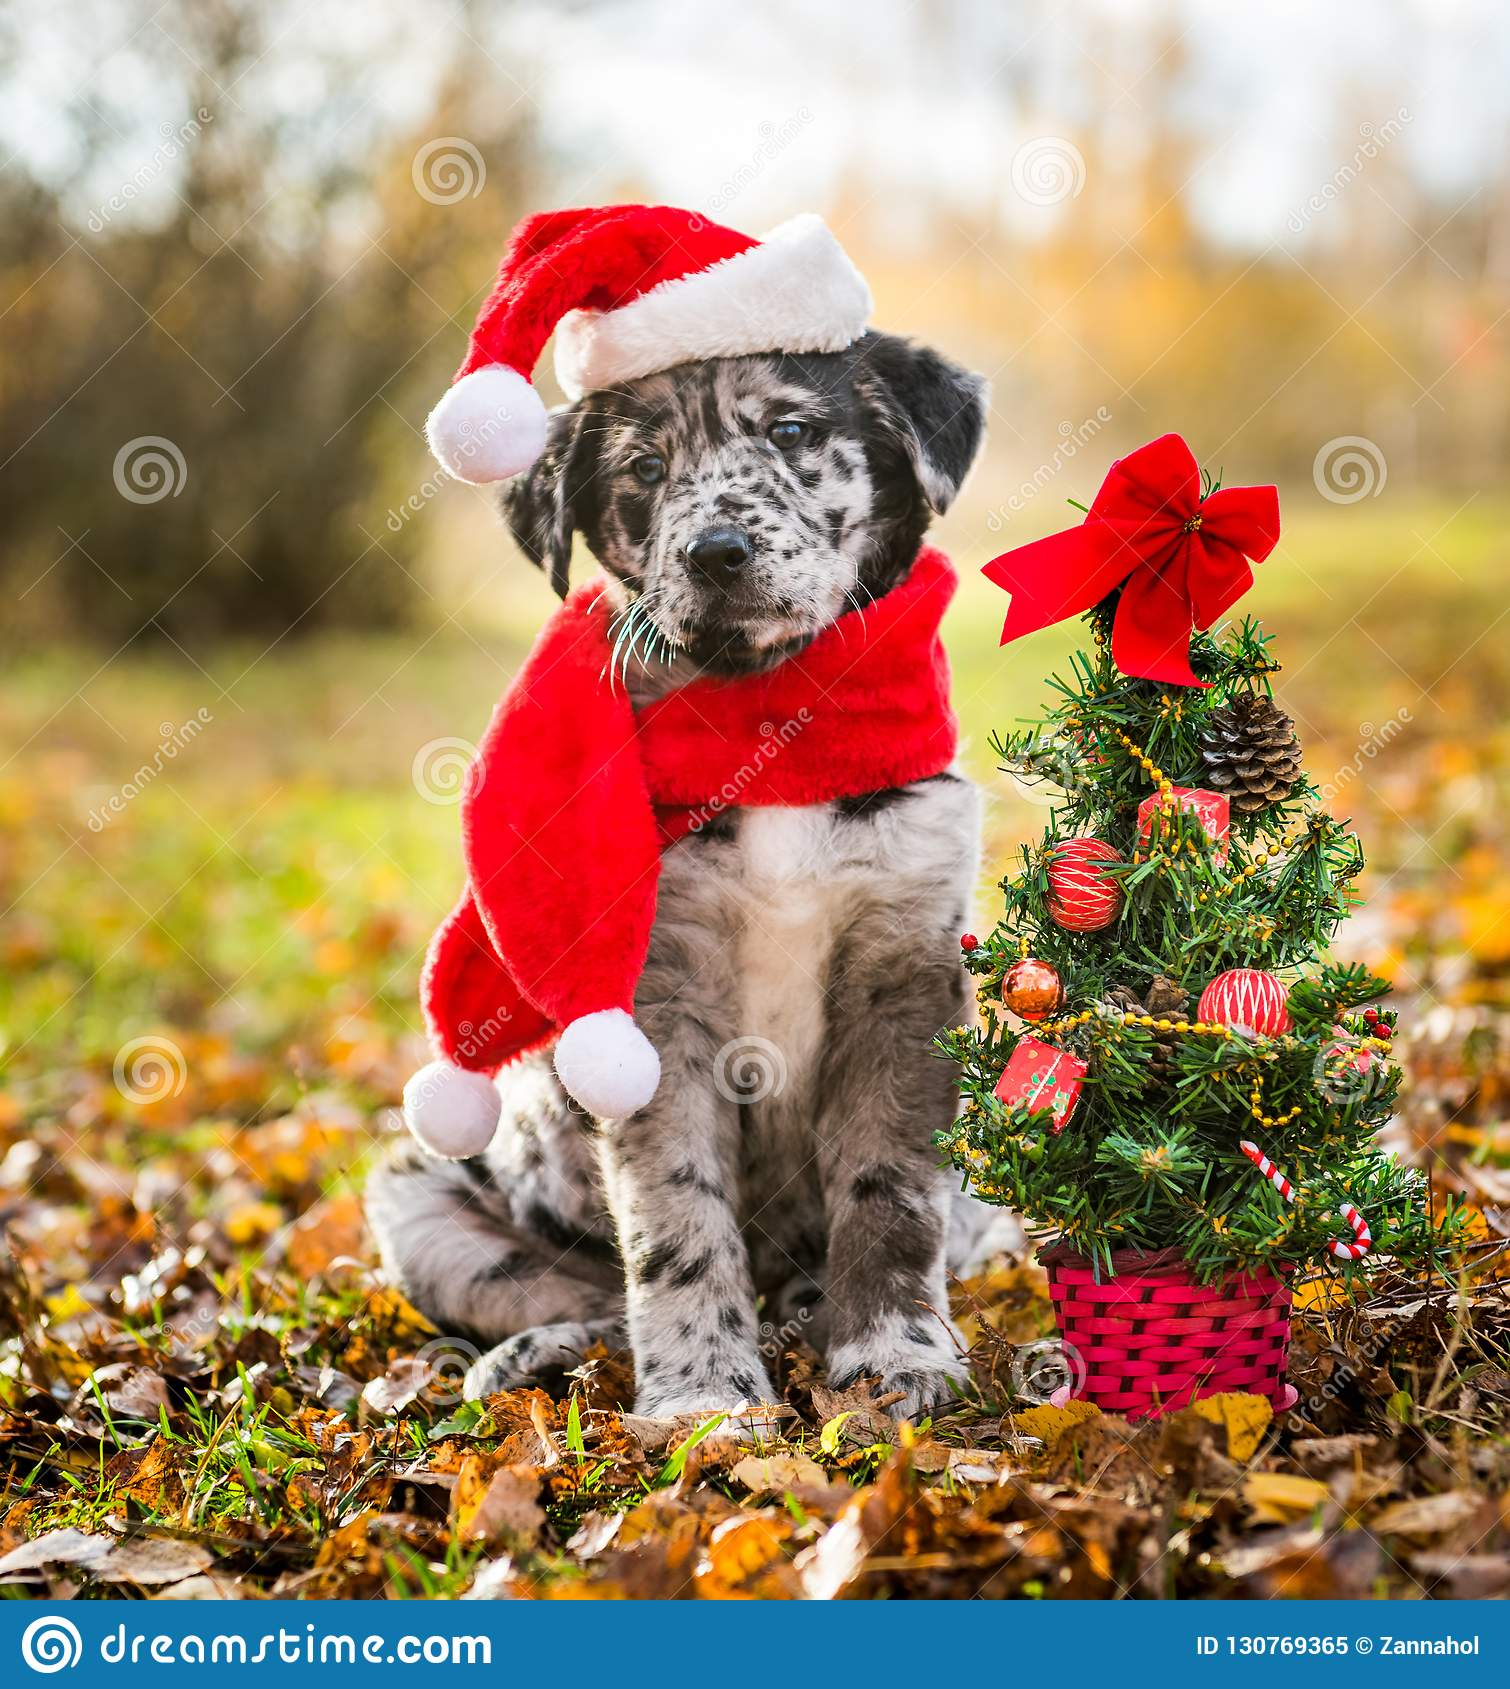 Labrador Puppy In Santa Hat And Christmas Tree Stock Image Image Of Animal Celebration 130769365